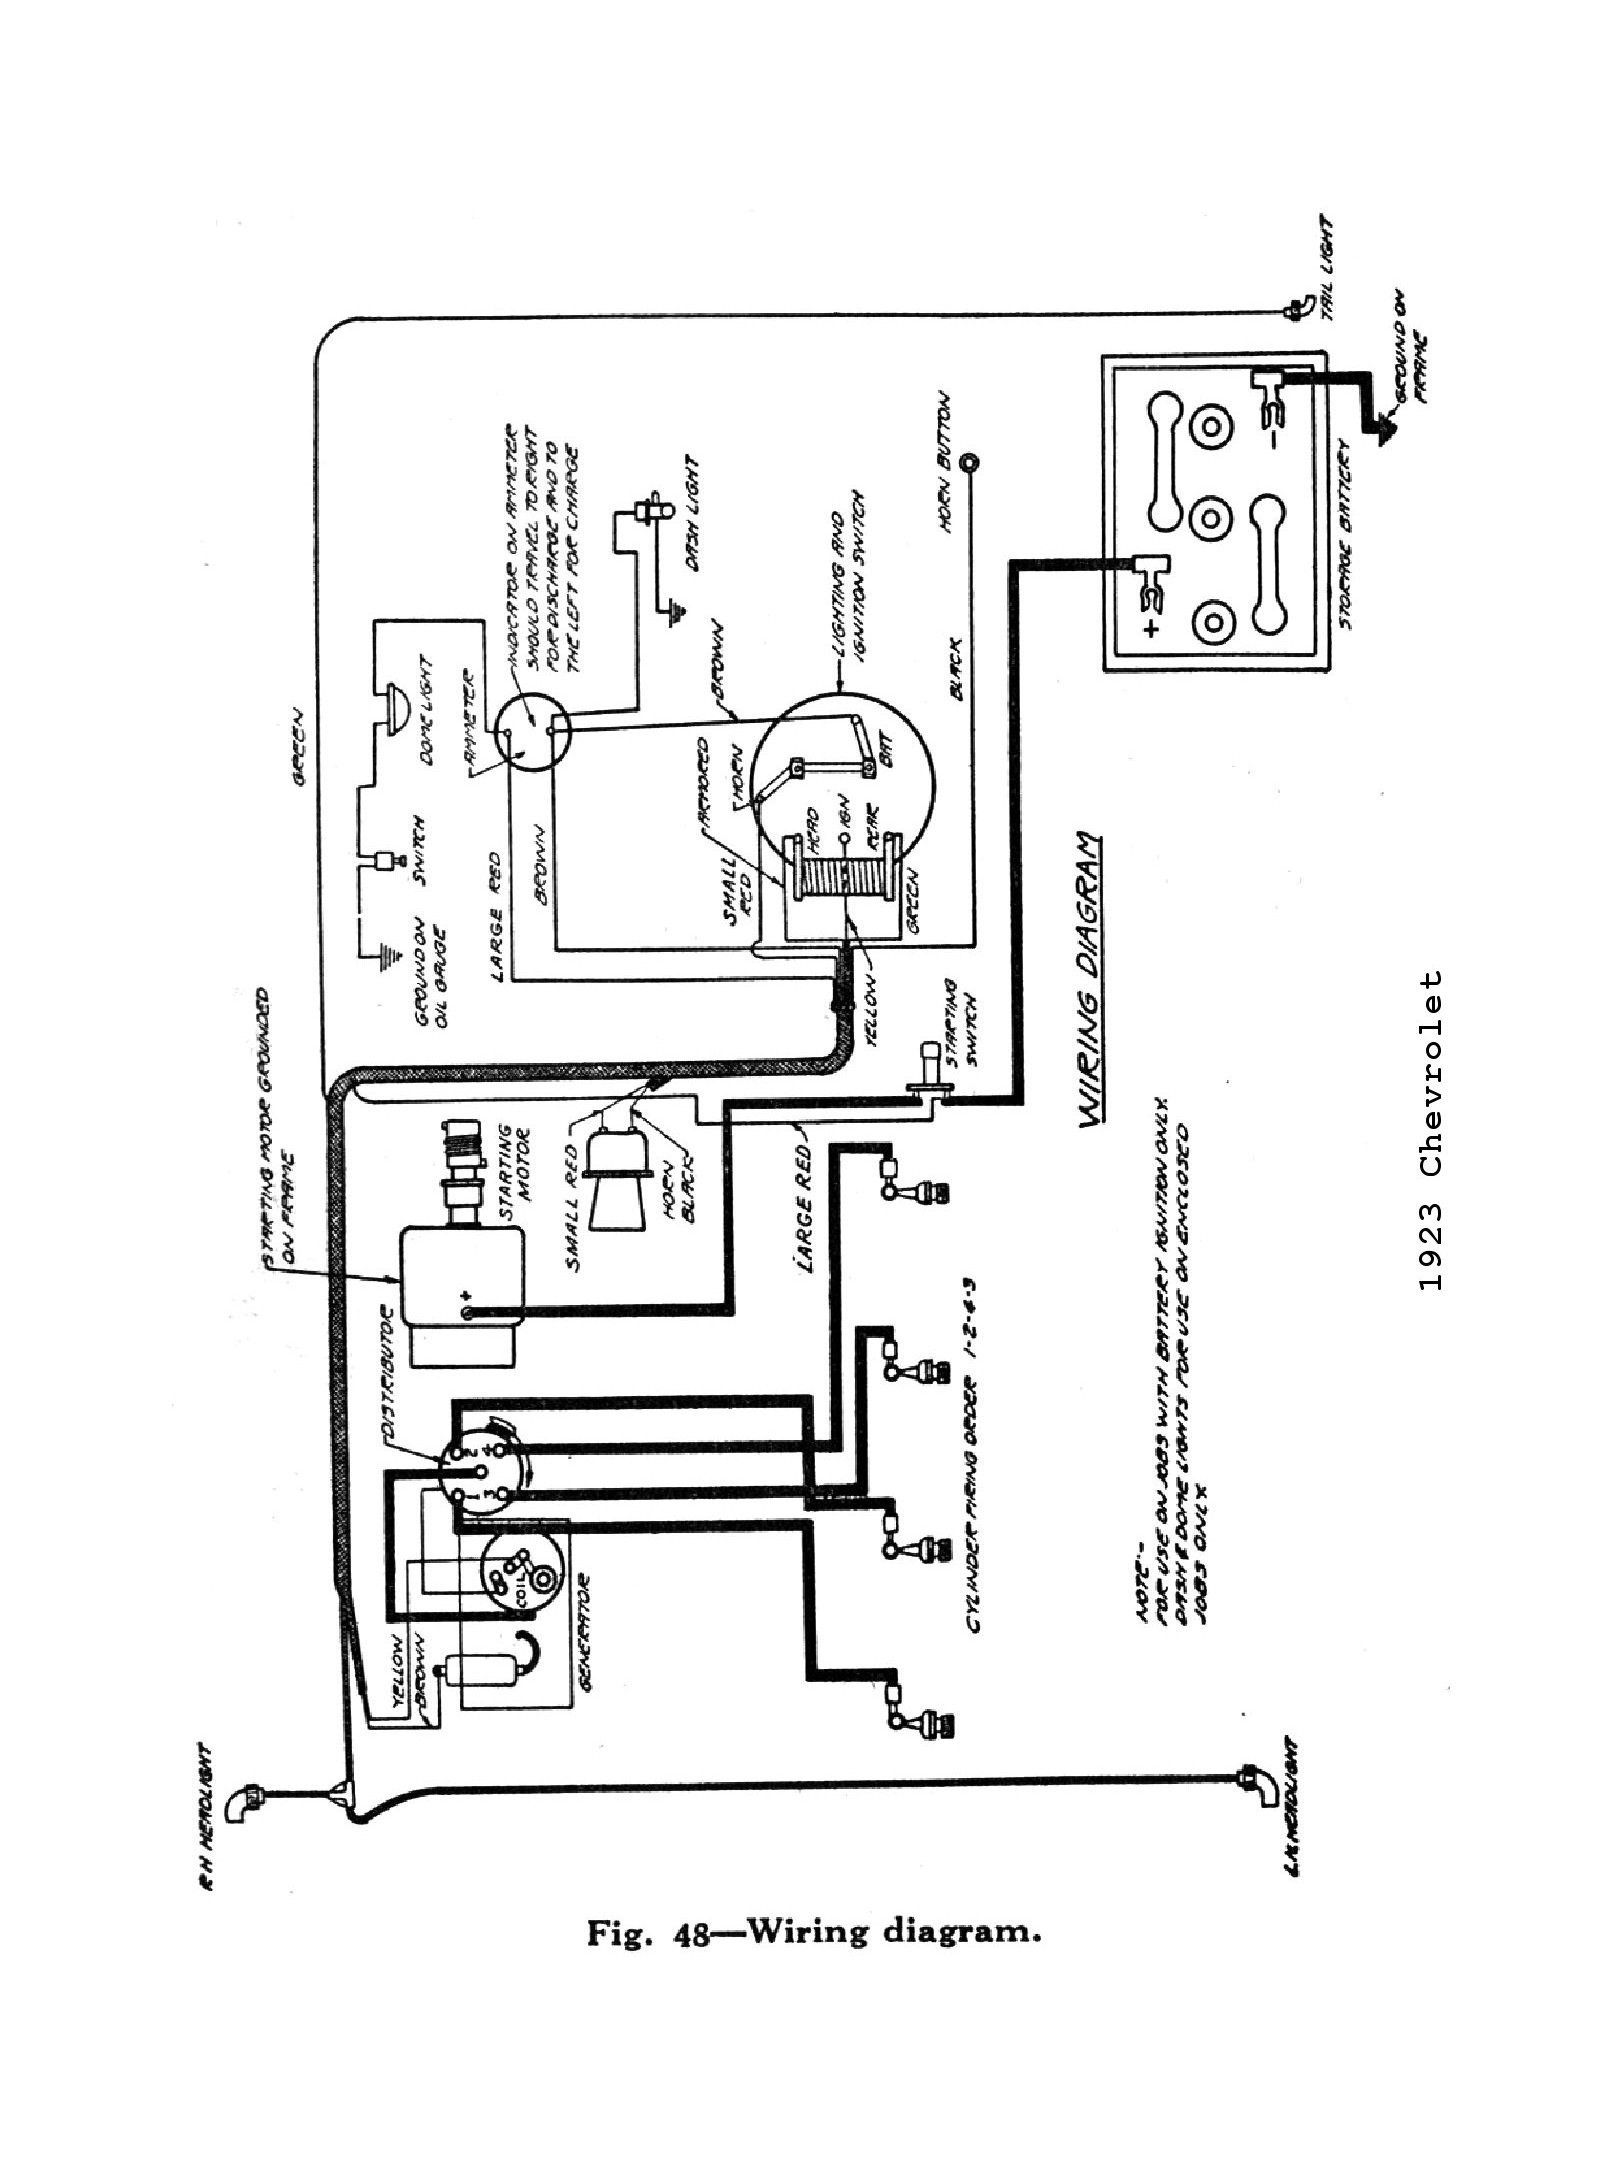 hight resolution of 1960 impala wiring diagram wiring diagram third level rh 3 15 22 jacobwinterstein com 1961 impala wiring diagram wiring diagram 1960 chevrolet parkwood